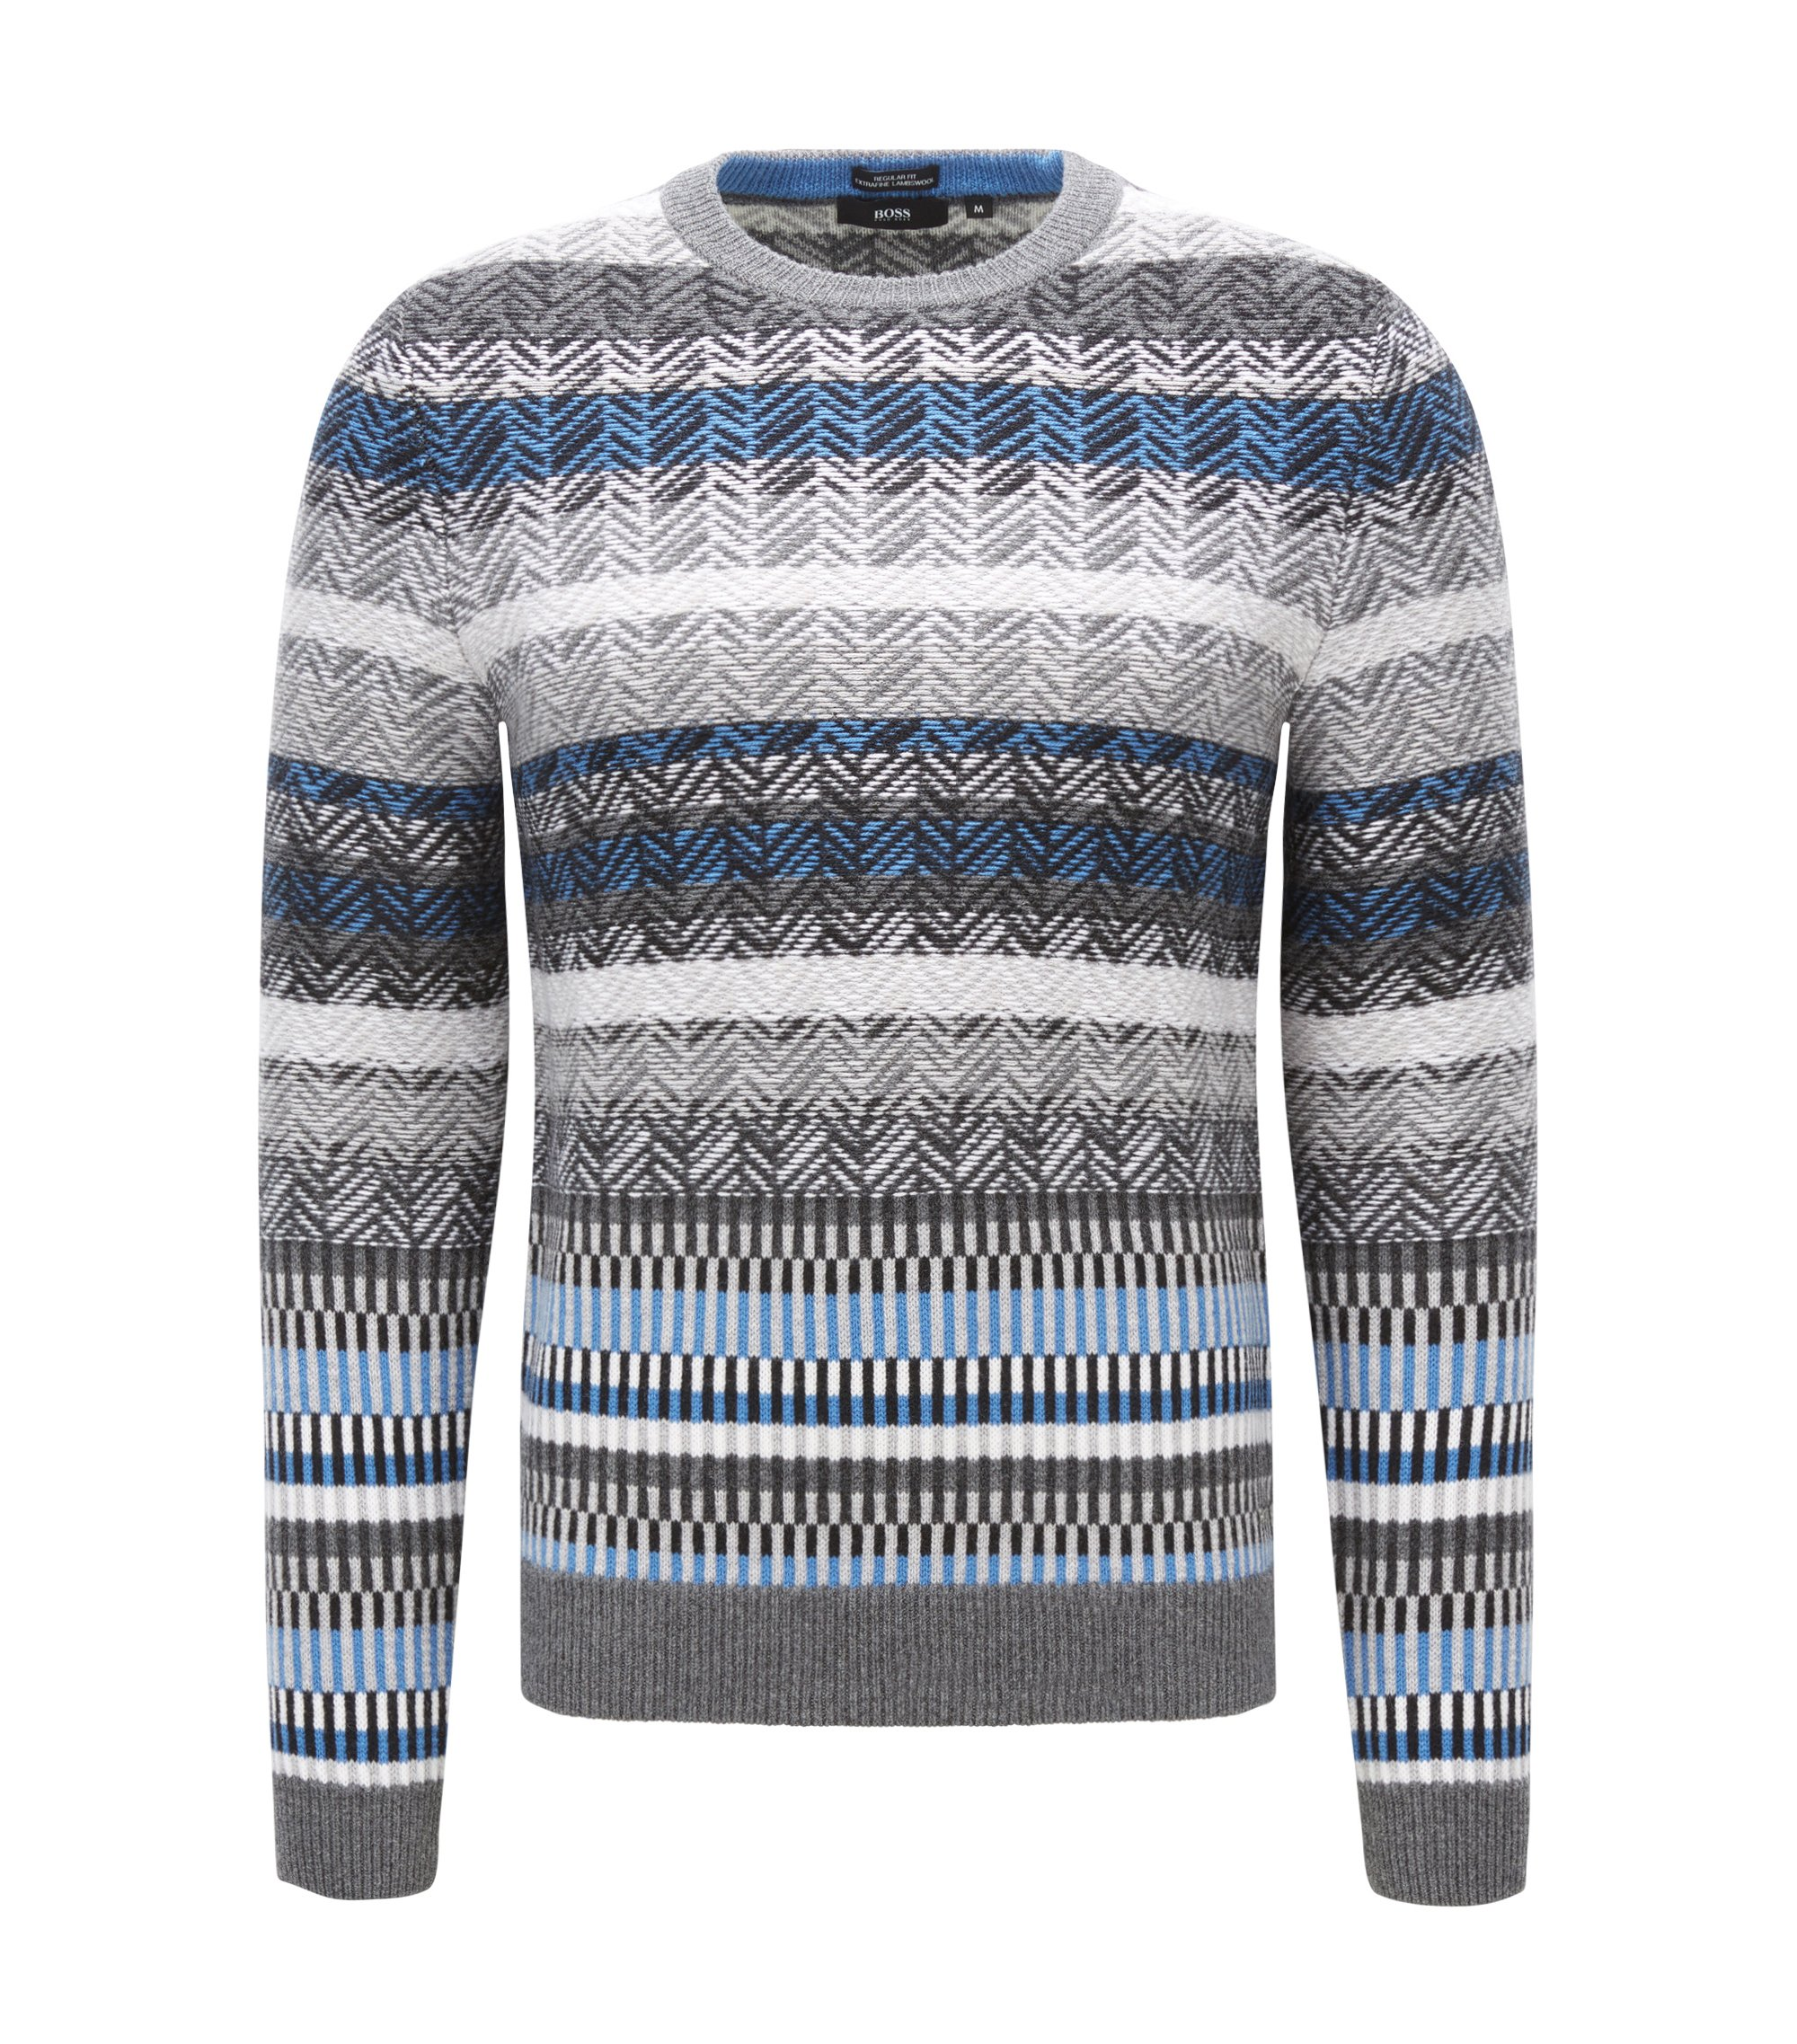 'Nemonti' | Fair Isle Virgin Wool Sweater, Grey